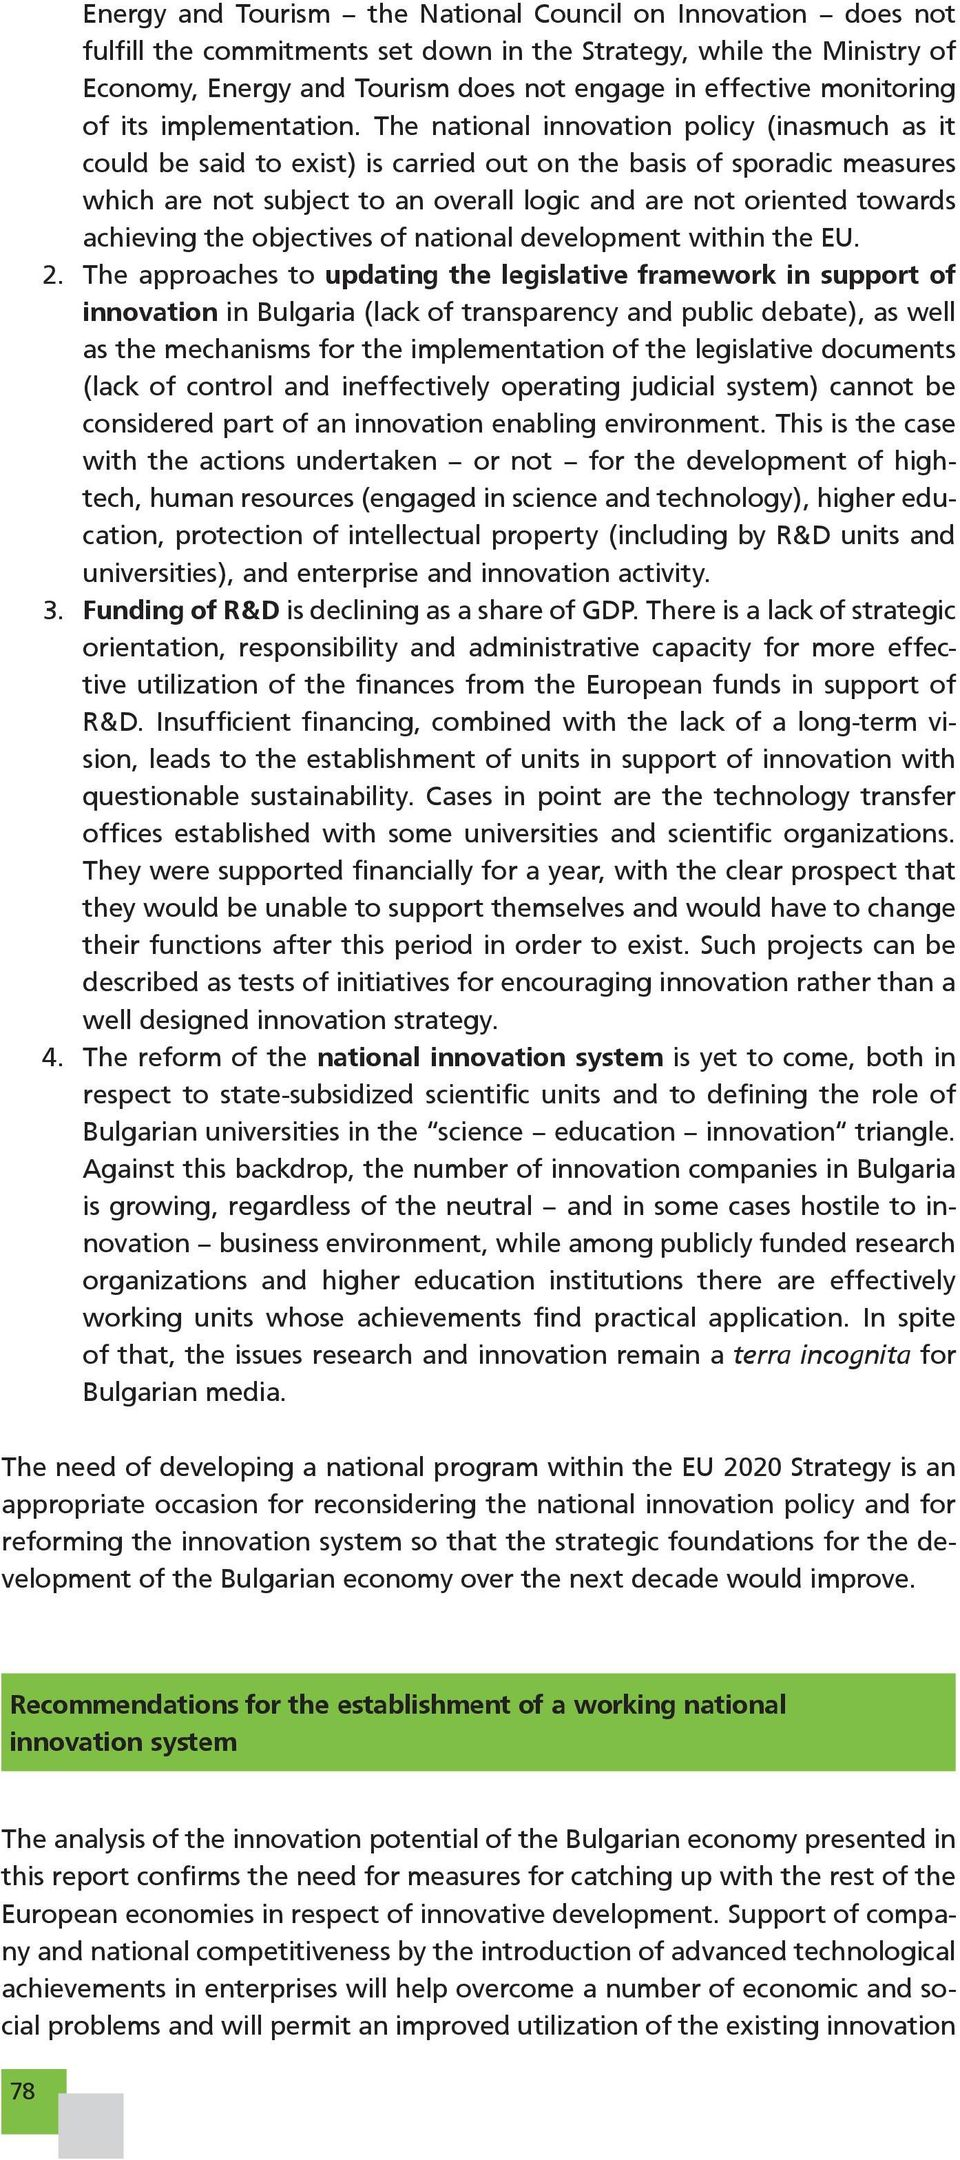 The national innovation policy (inasmuch as it could be said to exist) is carried out on the basis of sporadic measures which are not subject to an overall logic and are not oriented towards